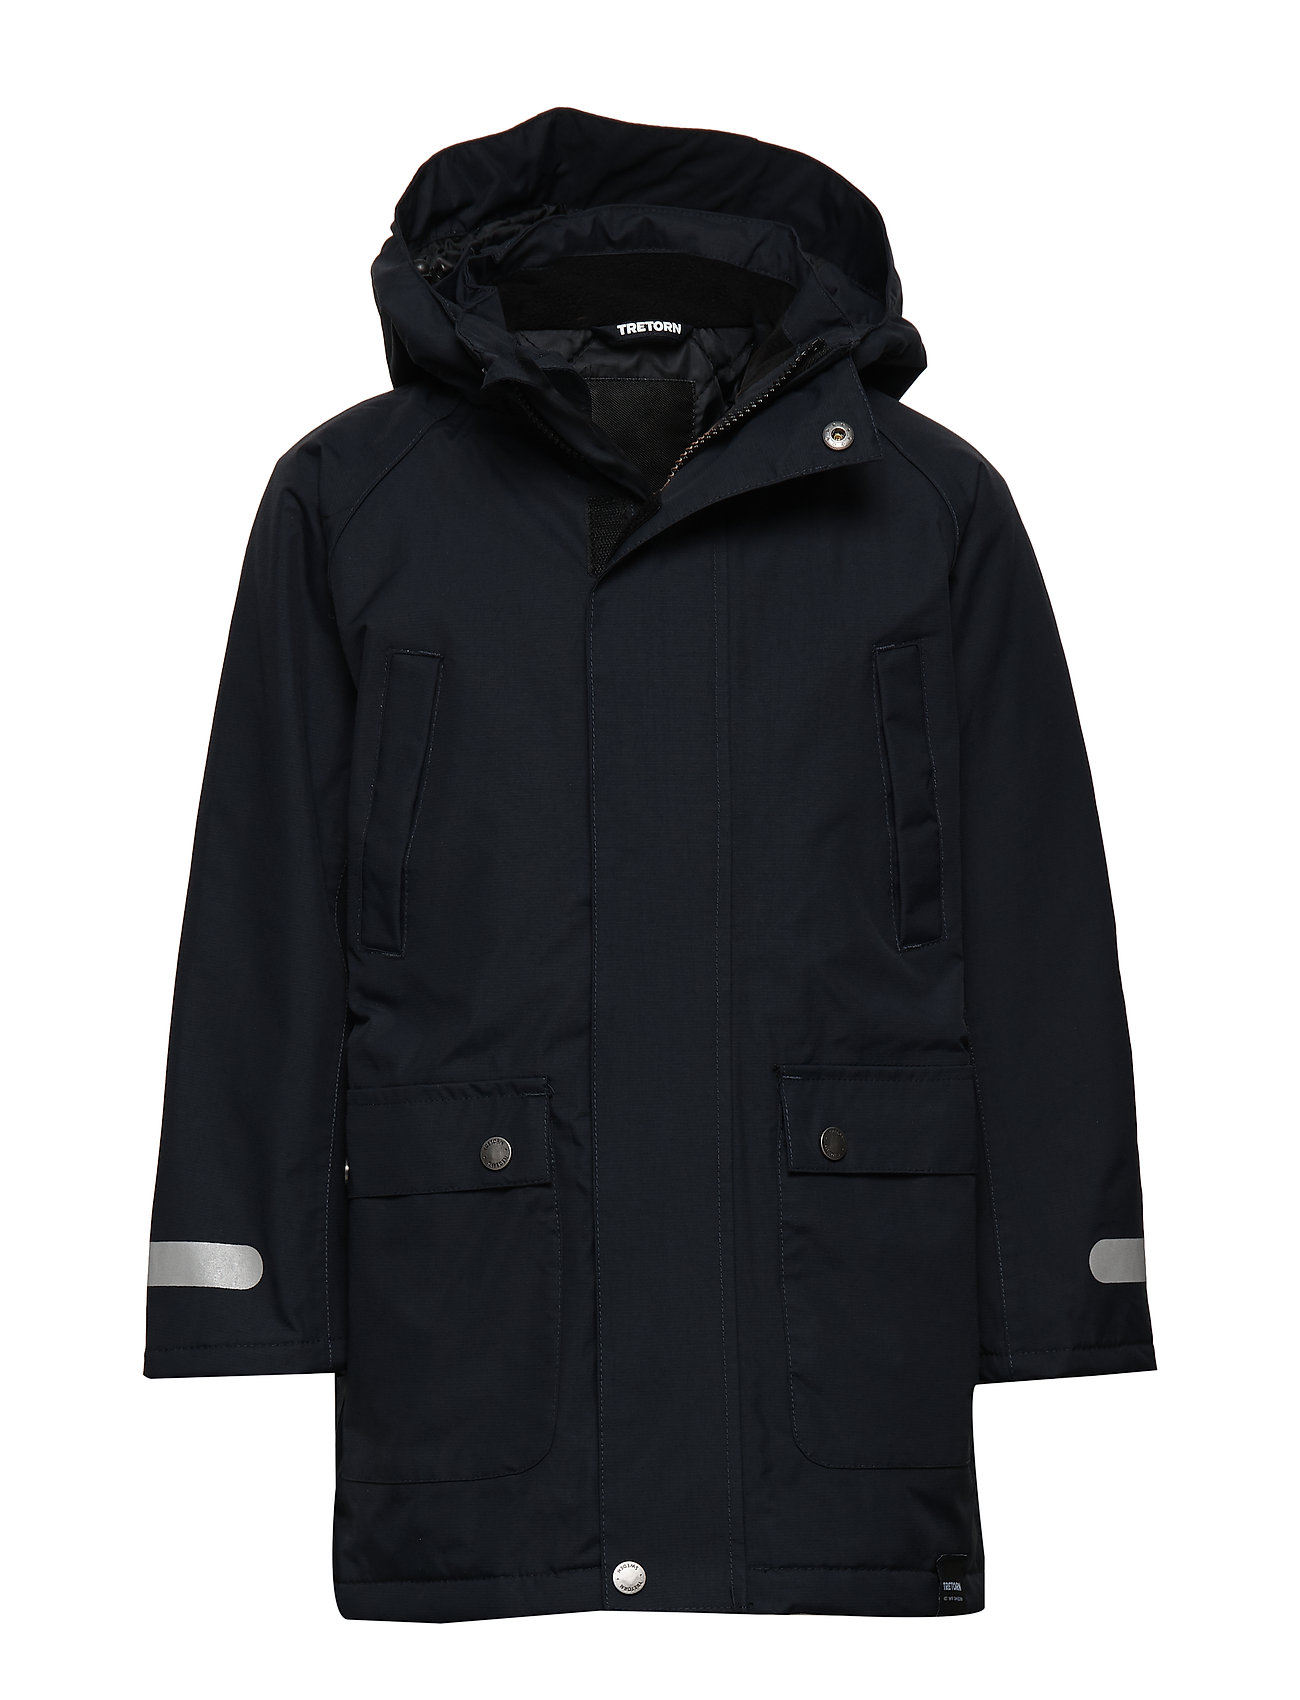 Tretorn KIDS PARKA FROM THE SEA - 017/HULL BLUE